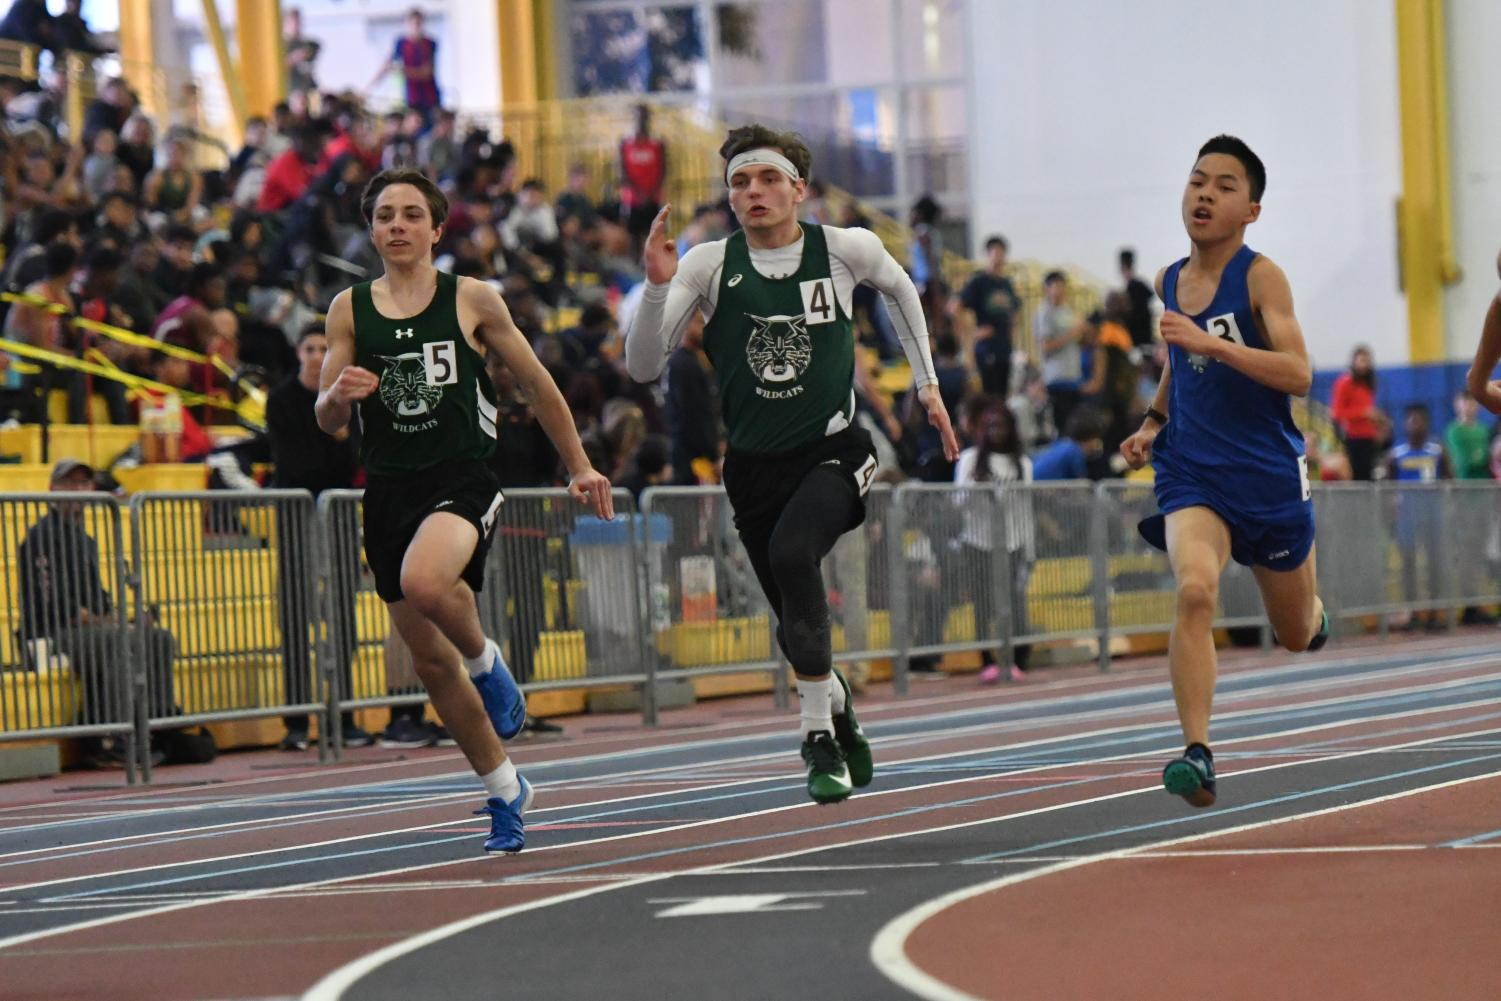 Sophomore Ben Cope (left) and Junior Declan Stablow (middle) spring into action for WJ. Both the boys and girls teams performed well at the Last Track to Philly meet and MCPS Championships.